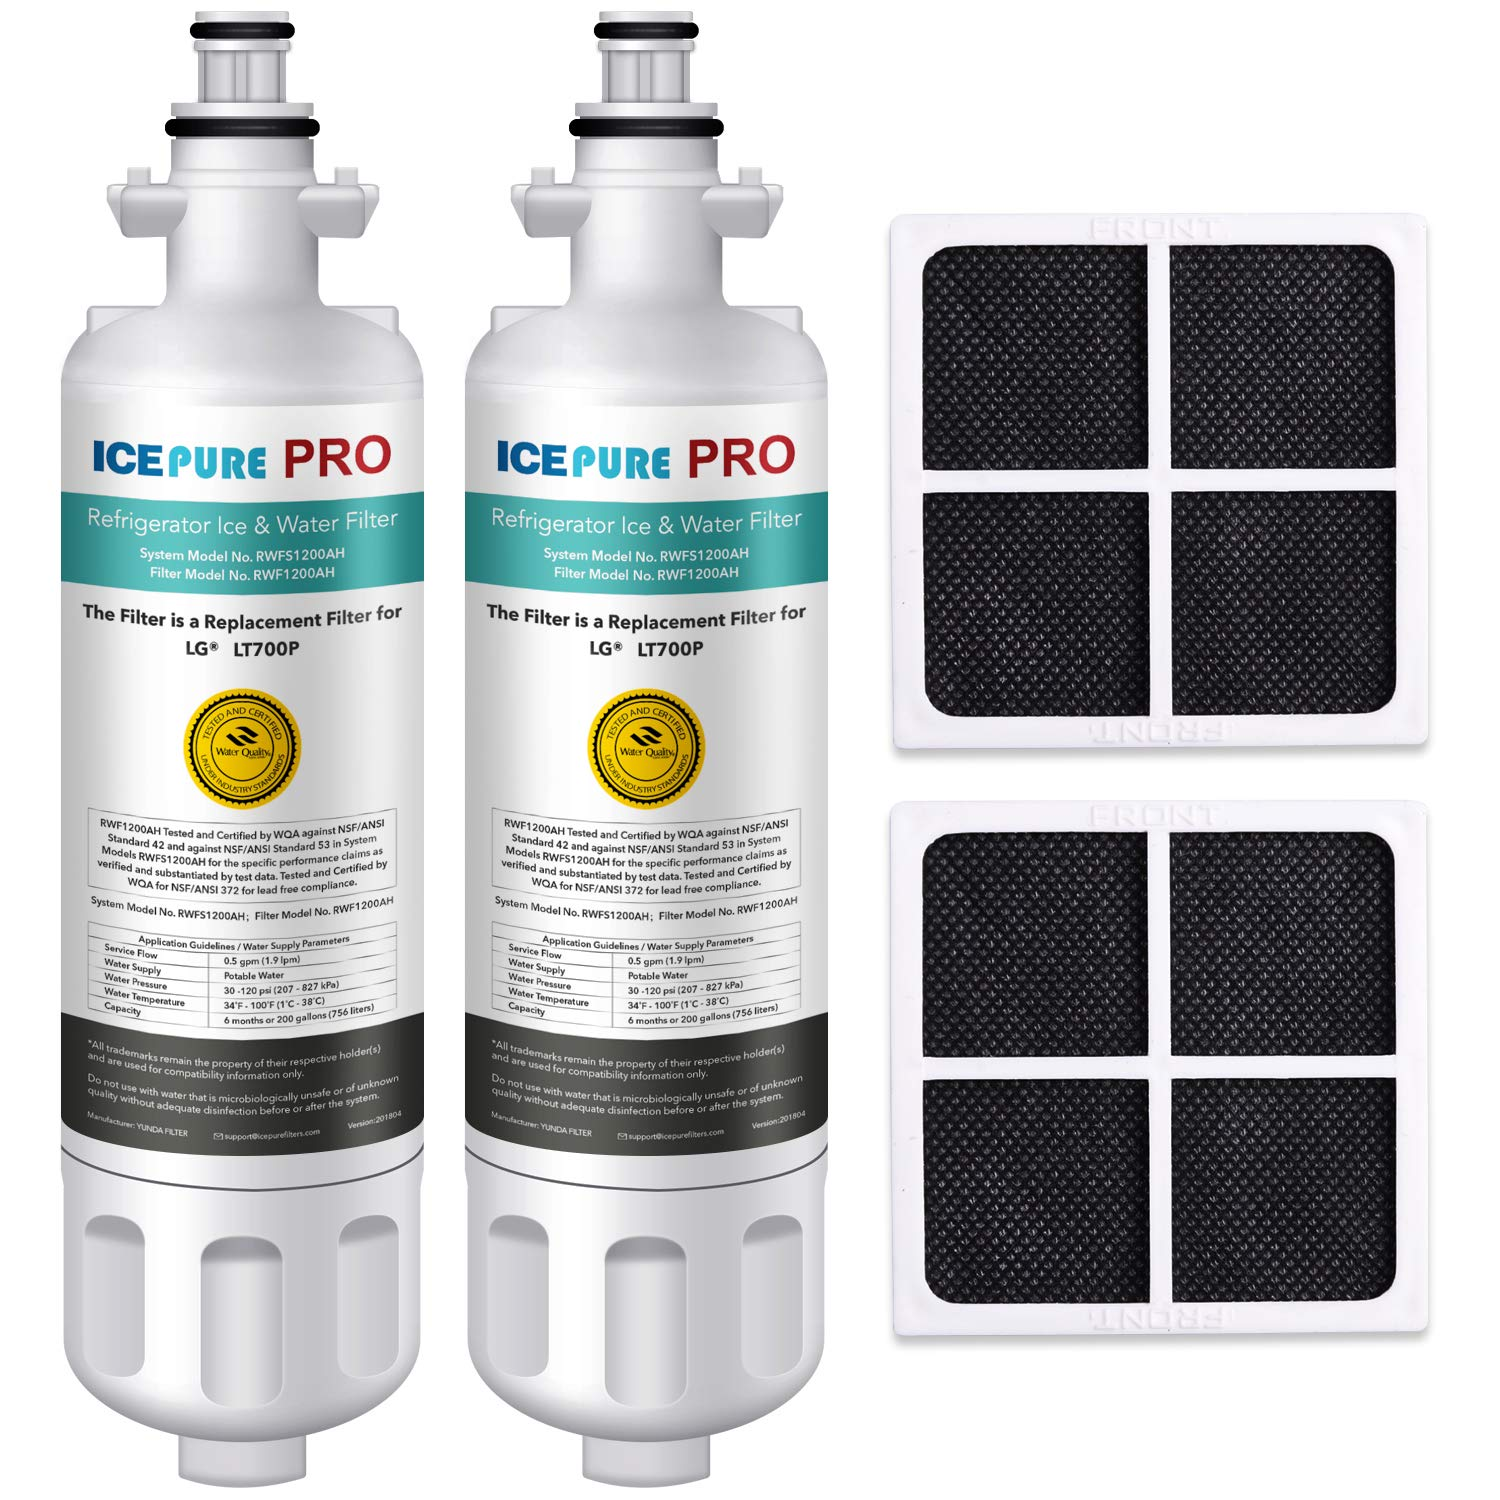 ICEPURE PRO LT700P NSF 53&42 Certified Refrigerator Water Filter and Air Filter, Compatible with LG LT700P, ADQ36006101, KENMORE 46-9690, ADQ36006102, LFXC24726S, and LT120F, RWF1200A, 2 Combo